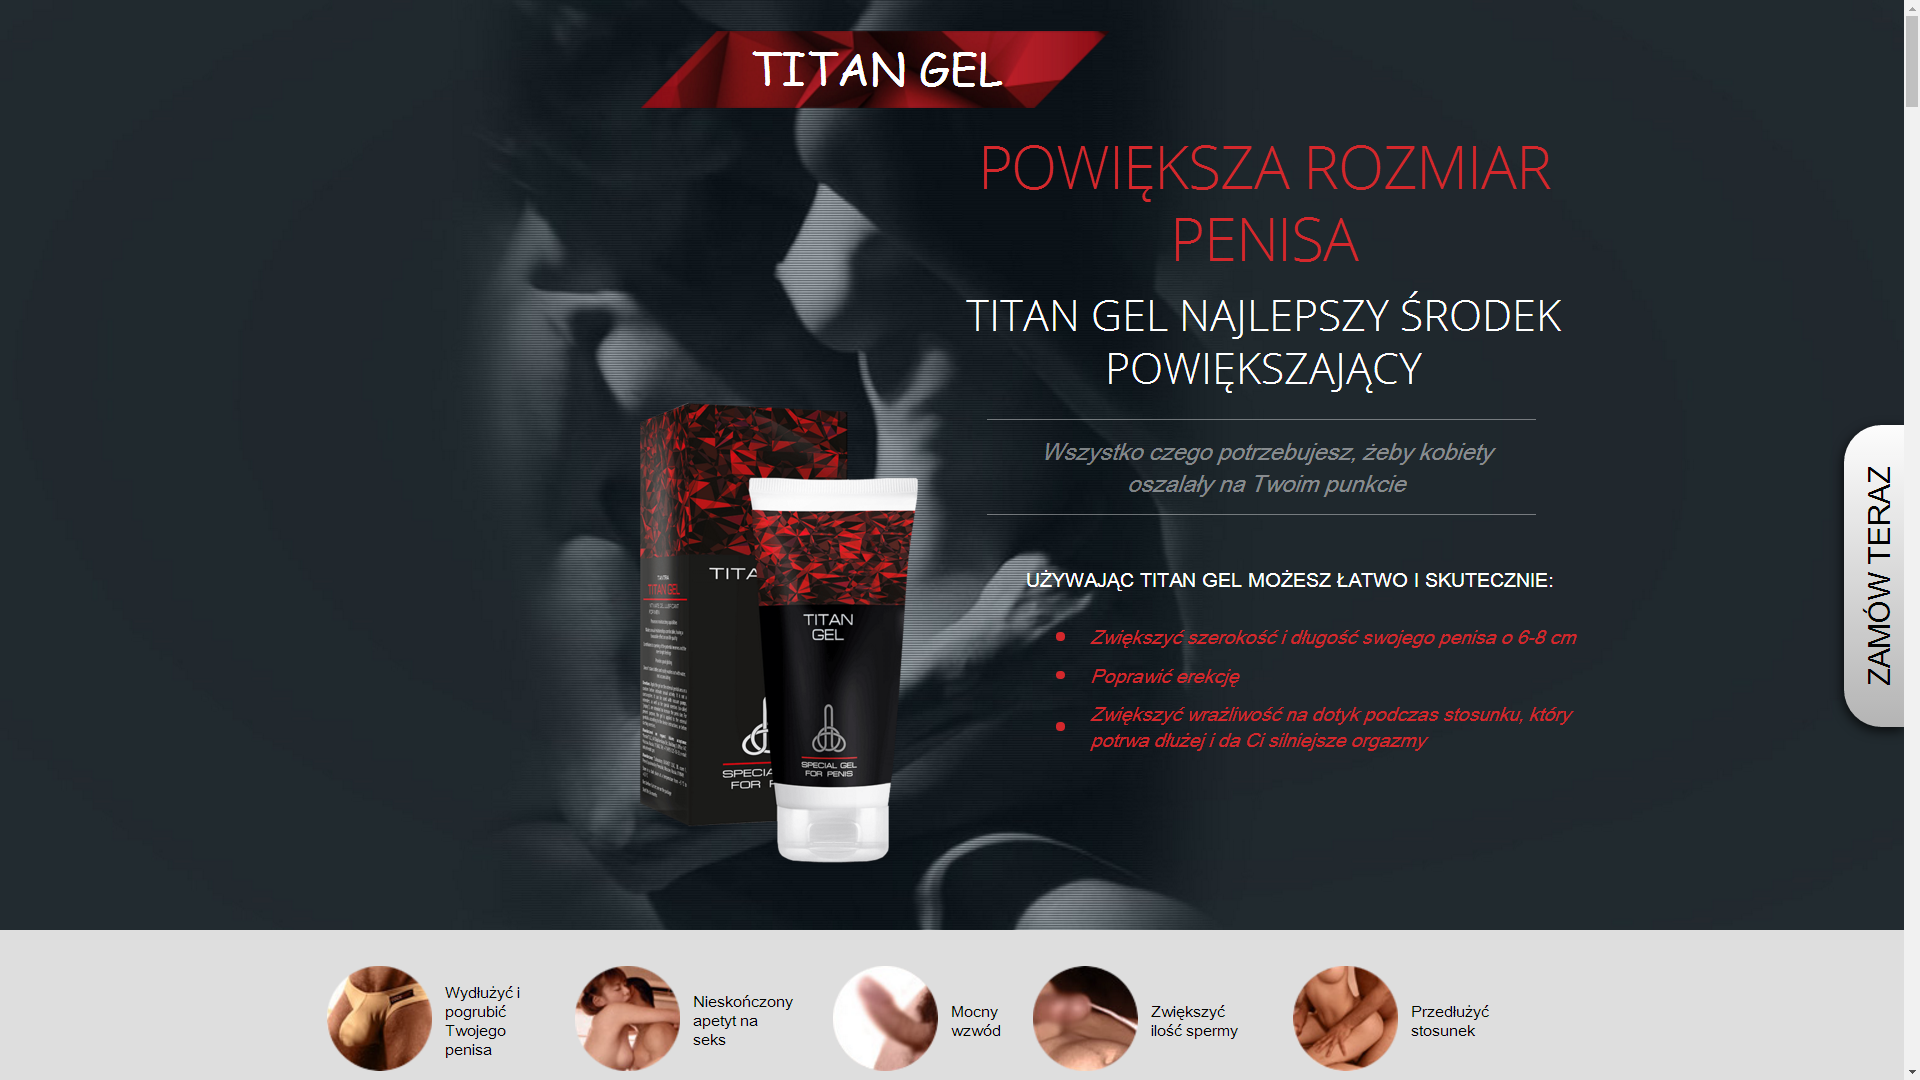 titan gel wglądu sex i pinterest